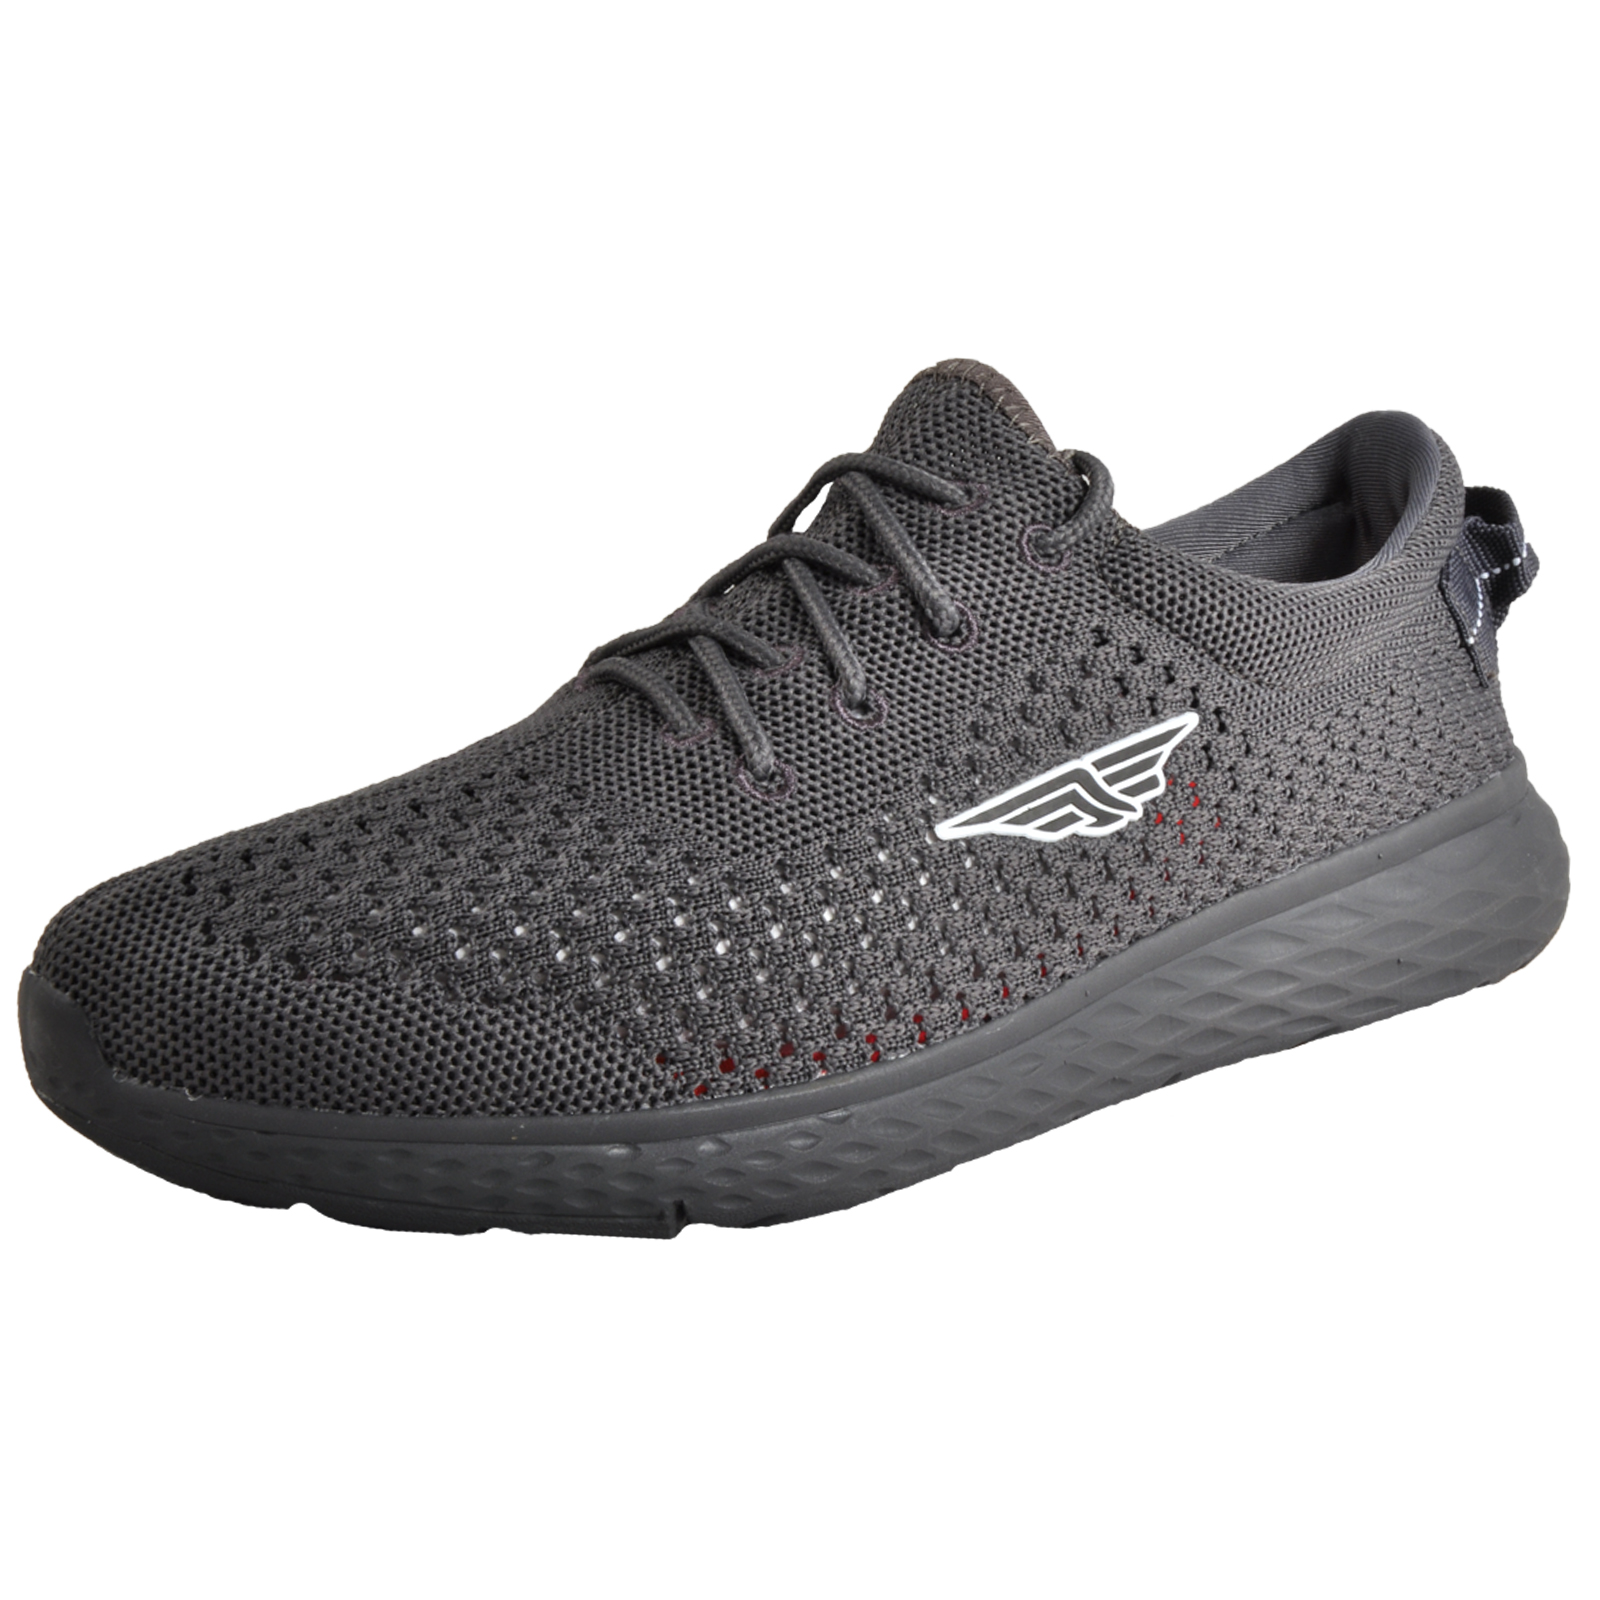 Details about Red Tape Speed Lite Men s Memory Foam Running Shoes Fitness  Trainers Grey 1229c06ae